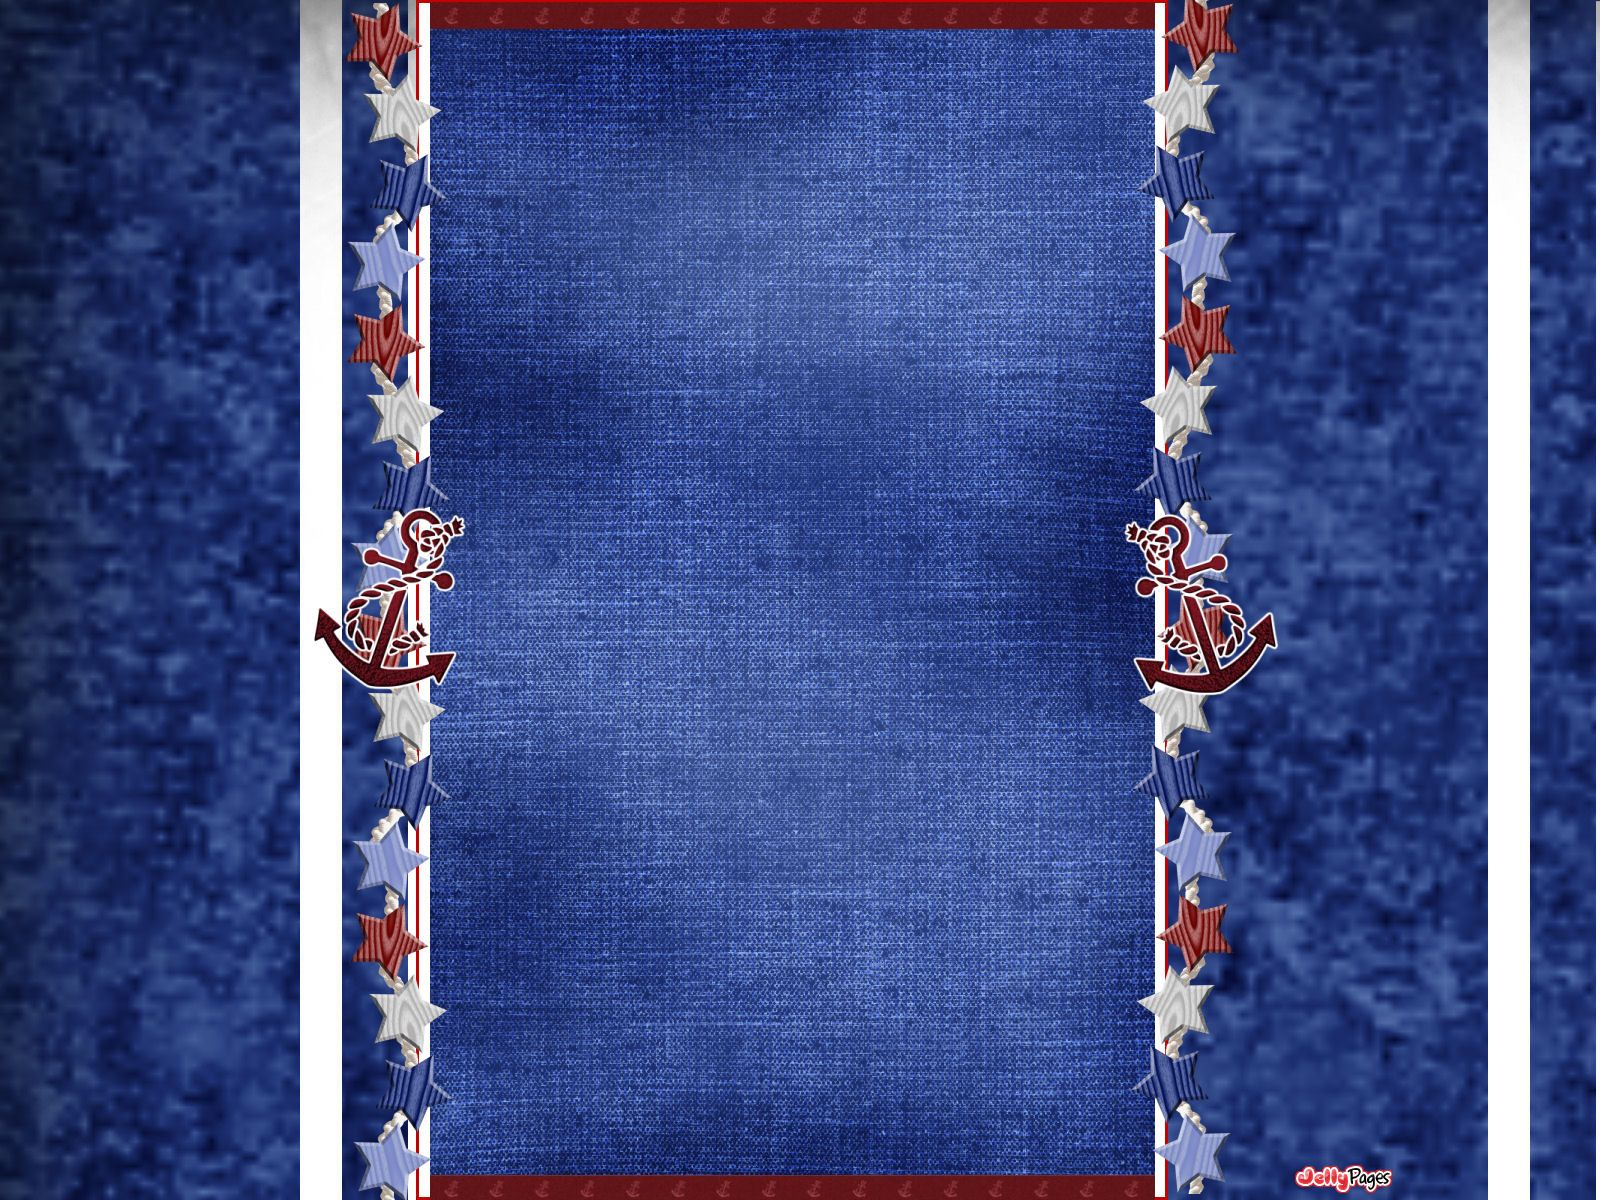 How to scrapbook yahoo - Nautical Scrapbook Page Backgrounds Yahoo Image Search Results